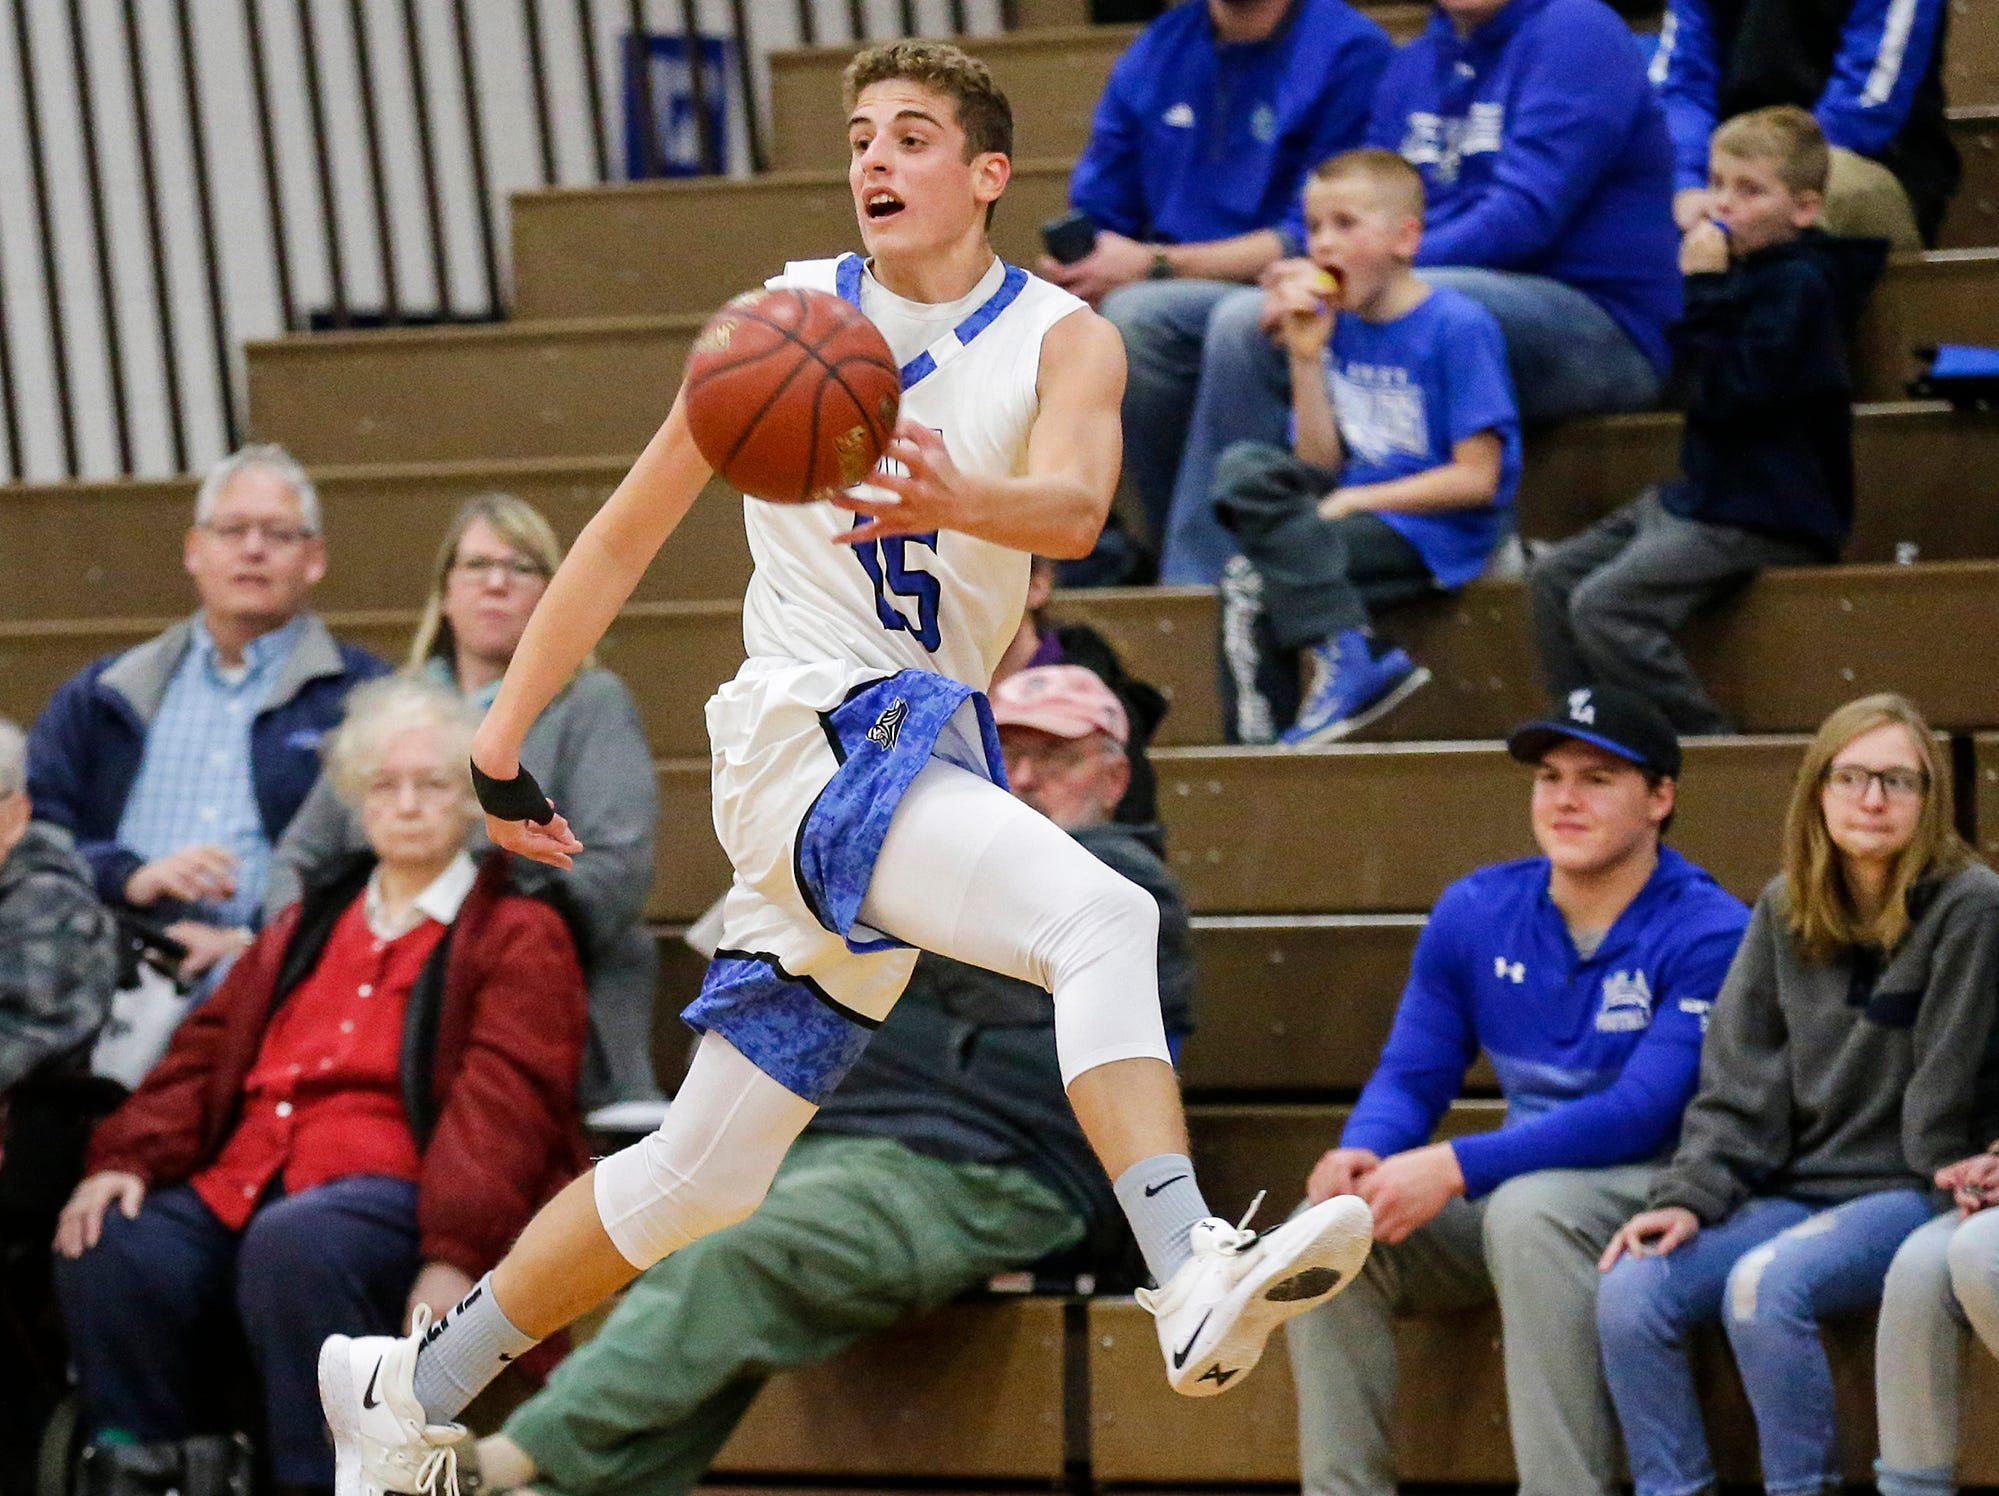 Winnebago Lutheran Academy boys basketball's Zach Loehr saves a ball from going out of bounds against St. Mary's Springs Academy Tuesday, January 8, 2019 during their game in Fond du Lac. Winnebago Lutheran Academy won the game 69-66. Doug Raflik/USA TODAY NETWORK-Wisconsin